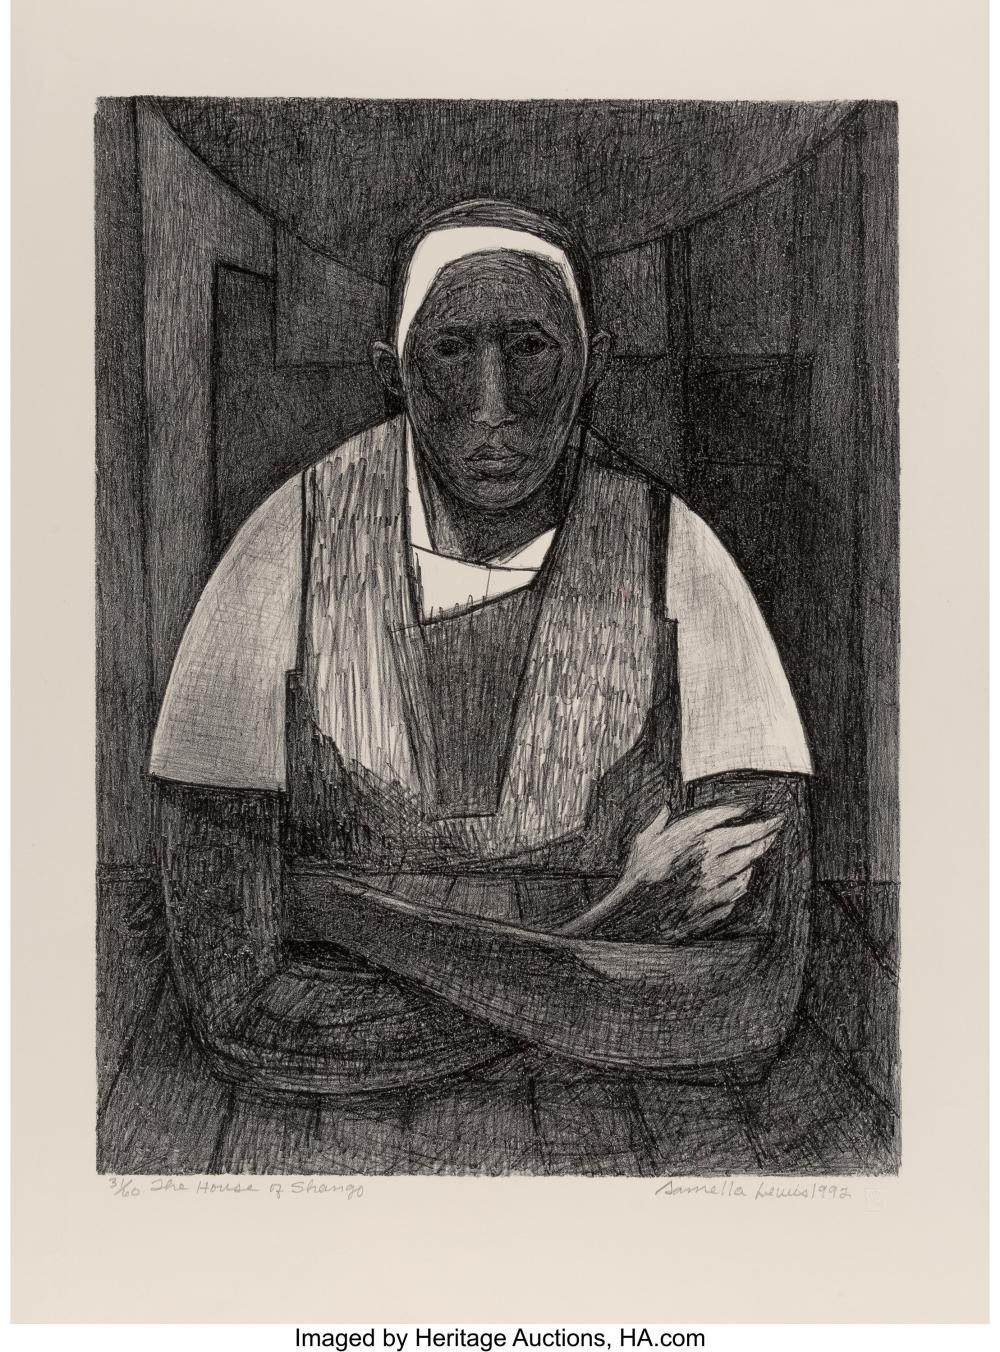 Samella Sanders Lewis (American, 1924) House of Shango, 1992 Lithograph on Arche